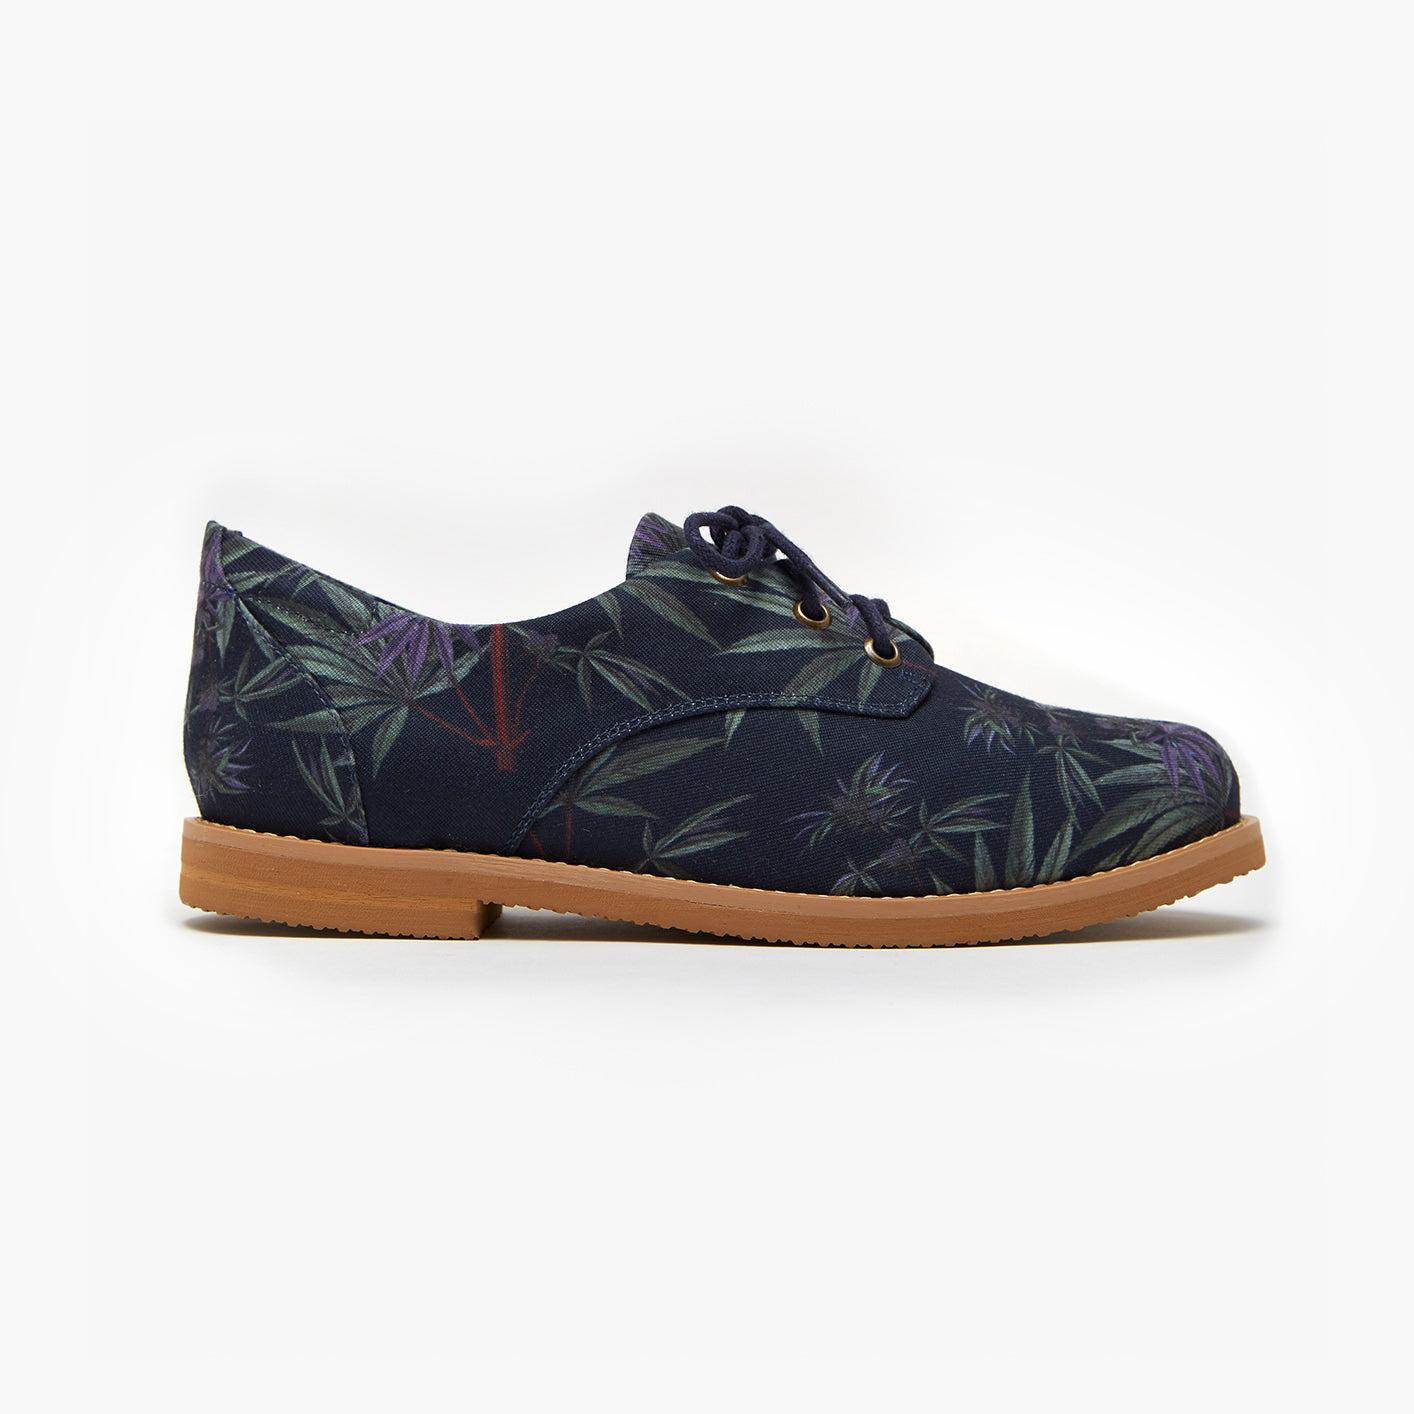 SATIVA OXFORD - Insecta Shoes